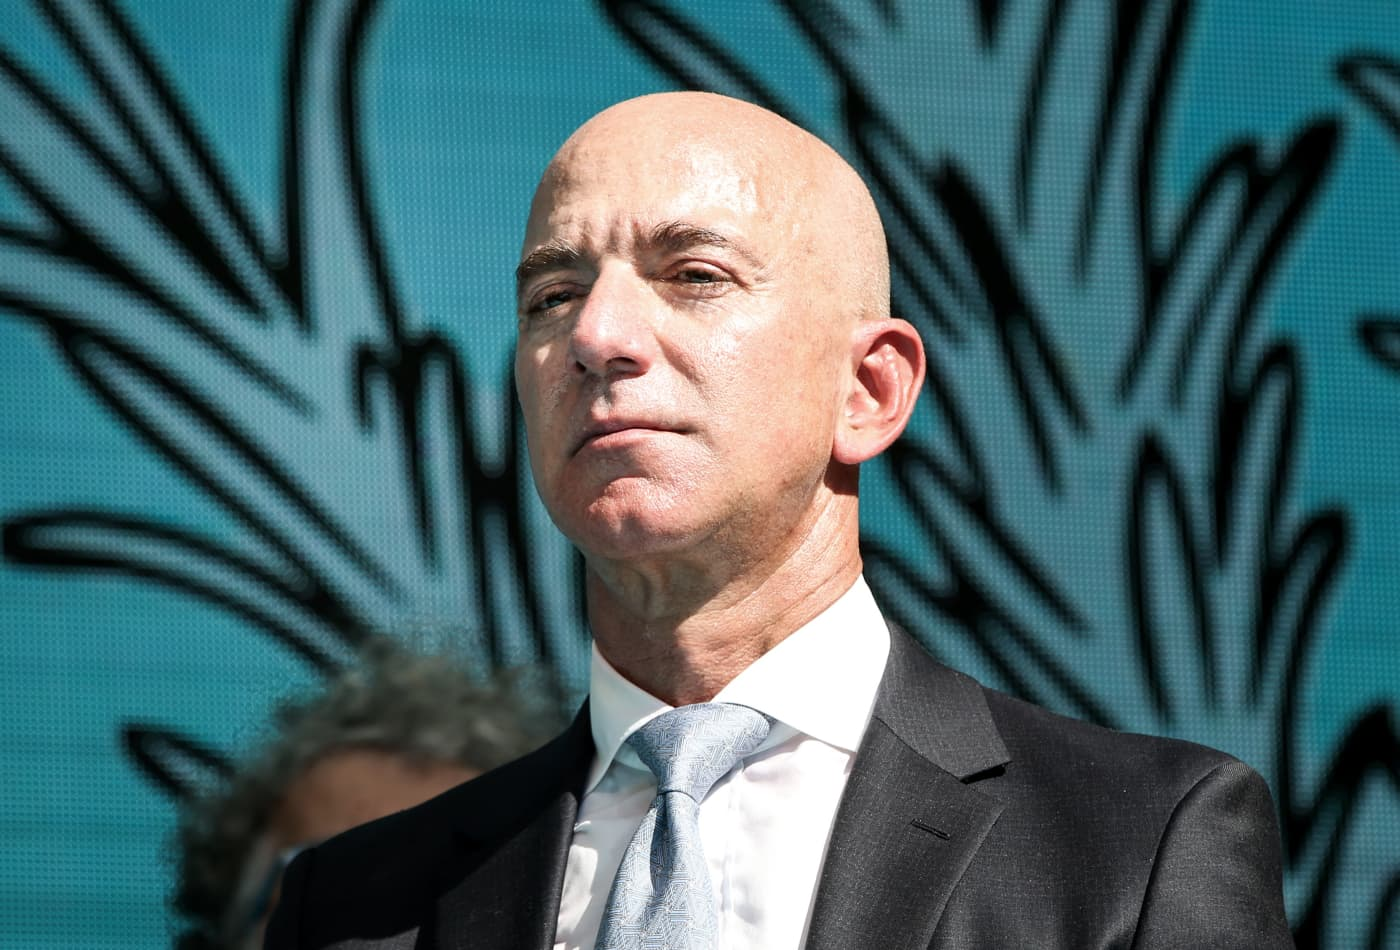 Here's what every major Wall Street analyst had to say about Amazon's 'simply humongous' quarter